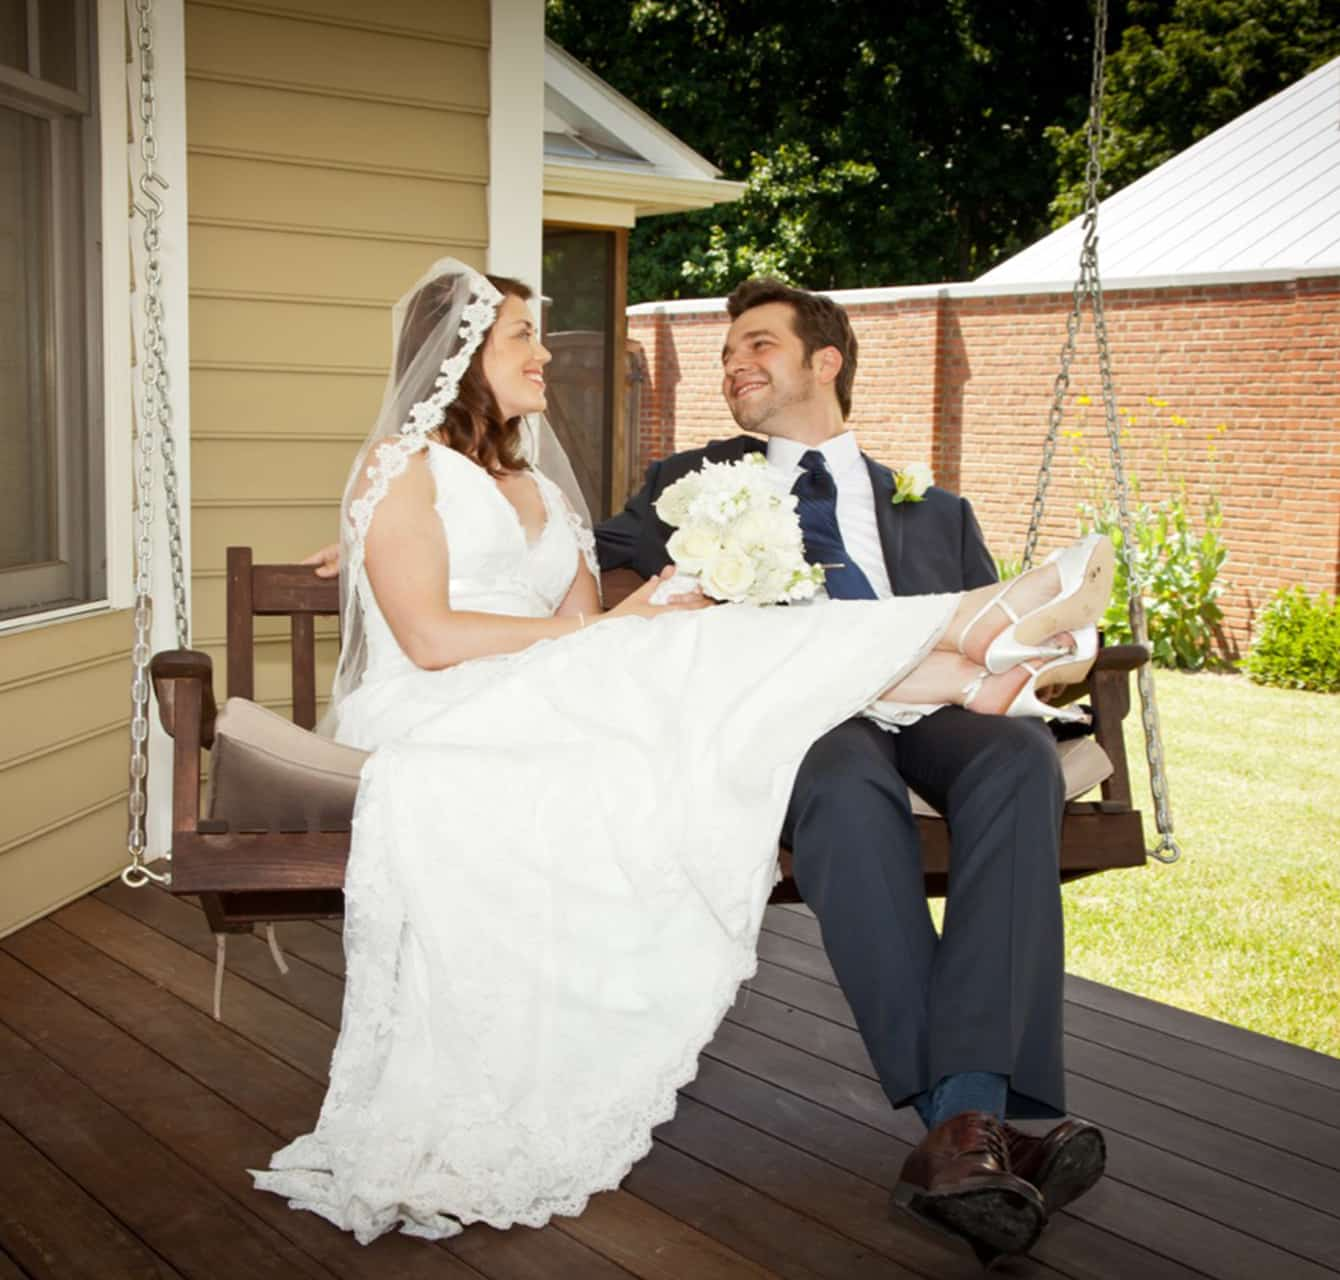 Married couple on a porch swing